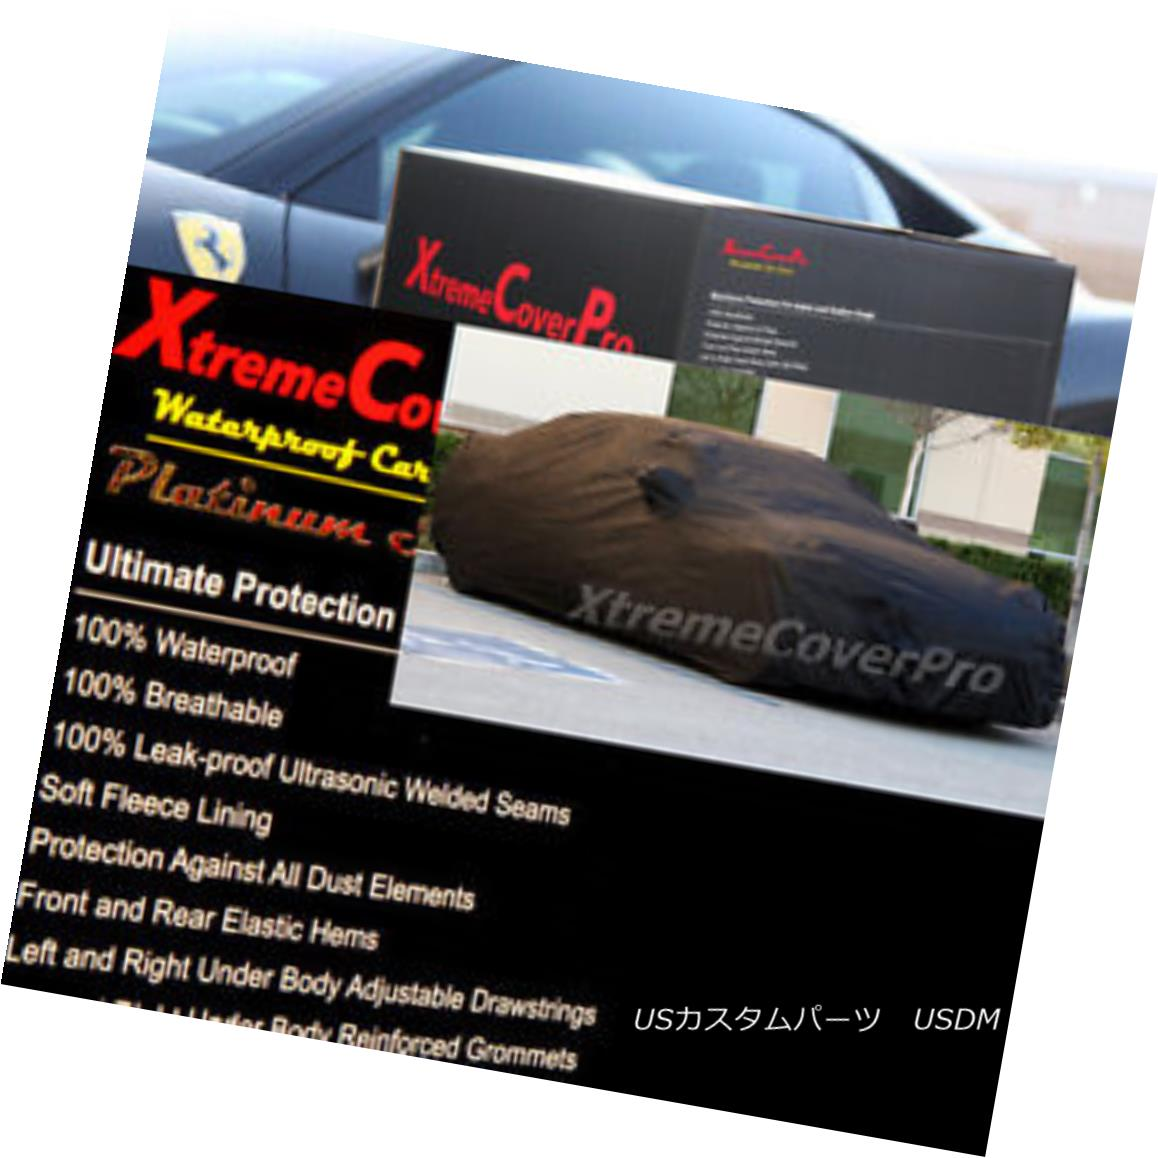 カーカバー 2015 MITSUBISHI LANCER Waterproof Car Cover w/Mirror Pockets - Black 2015 MITSUBISHI LANCERミラーポケット付き防水カーカバー - ブラック